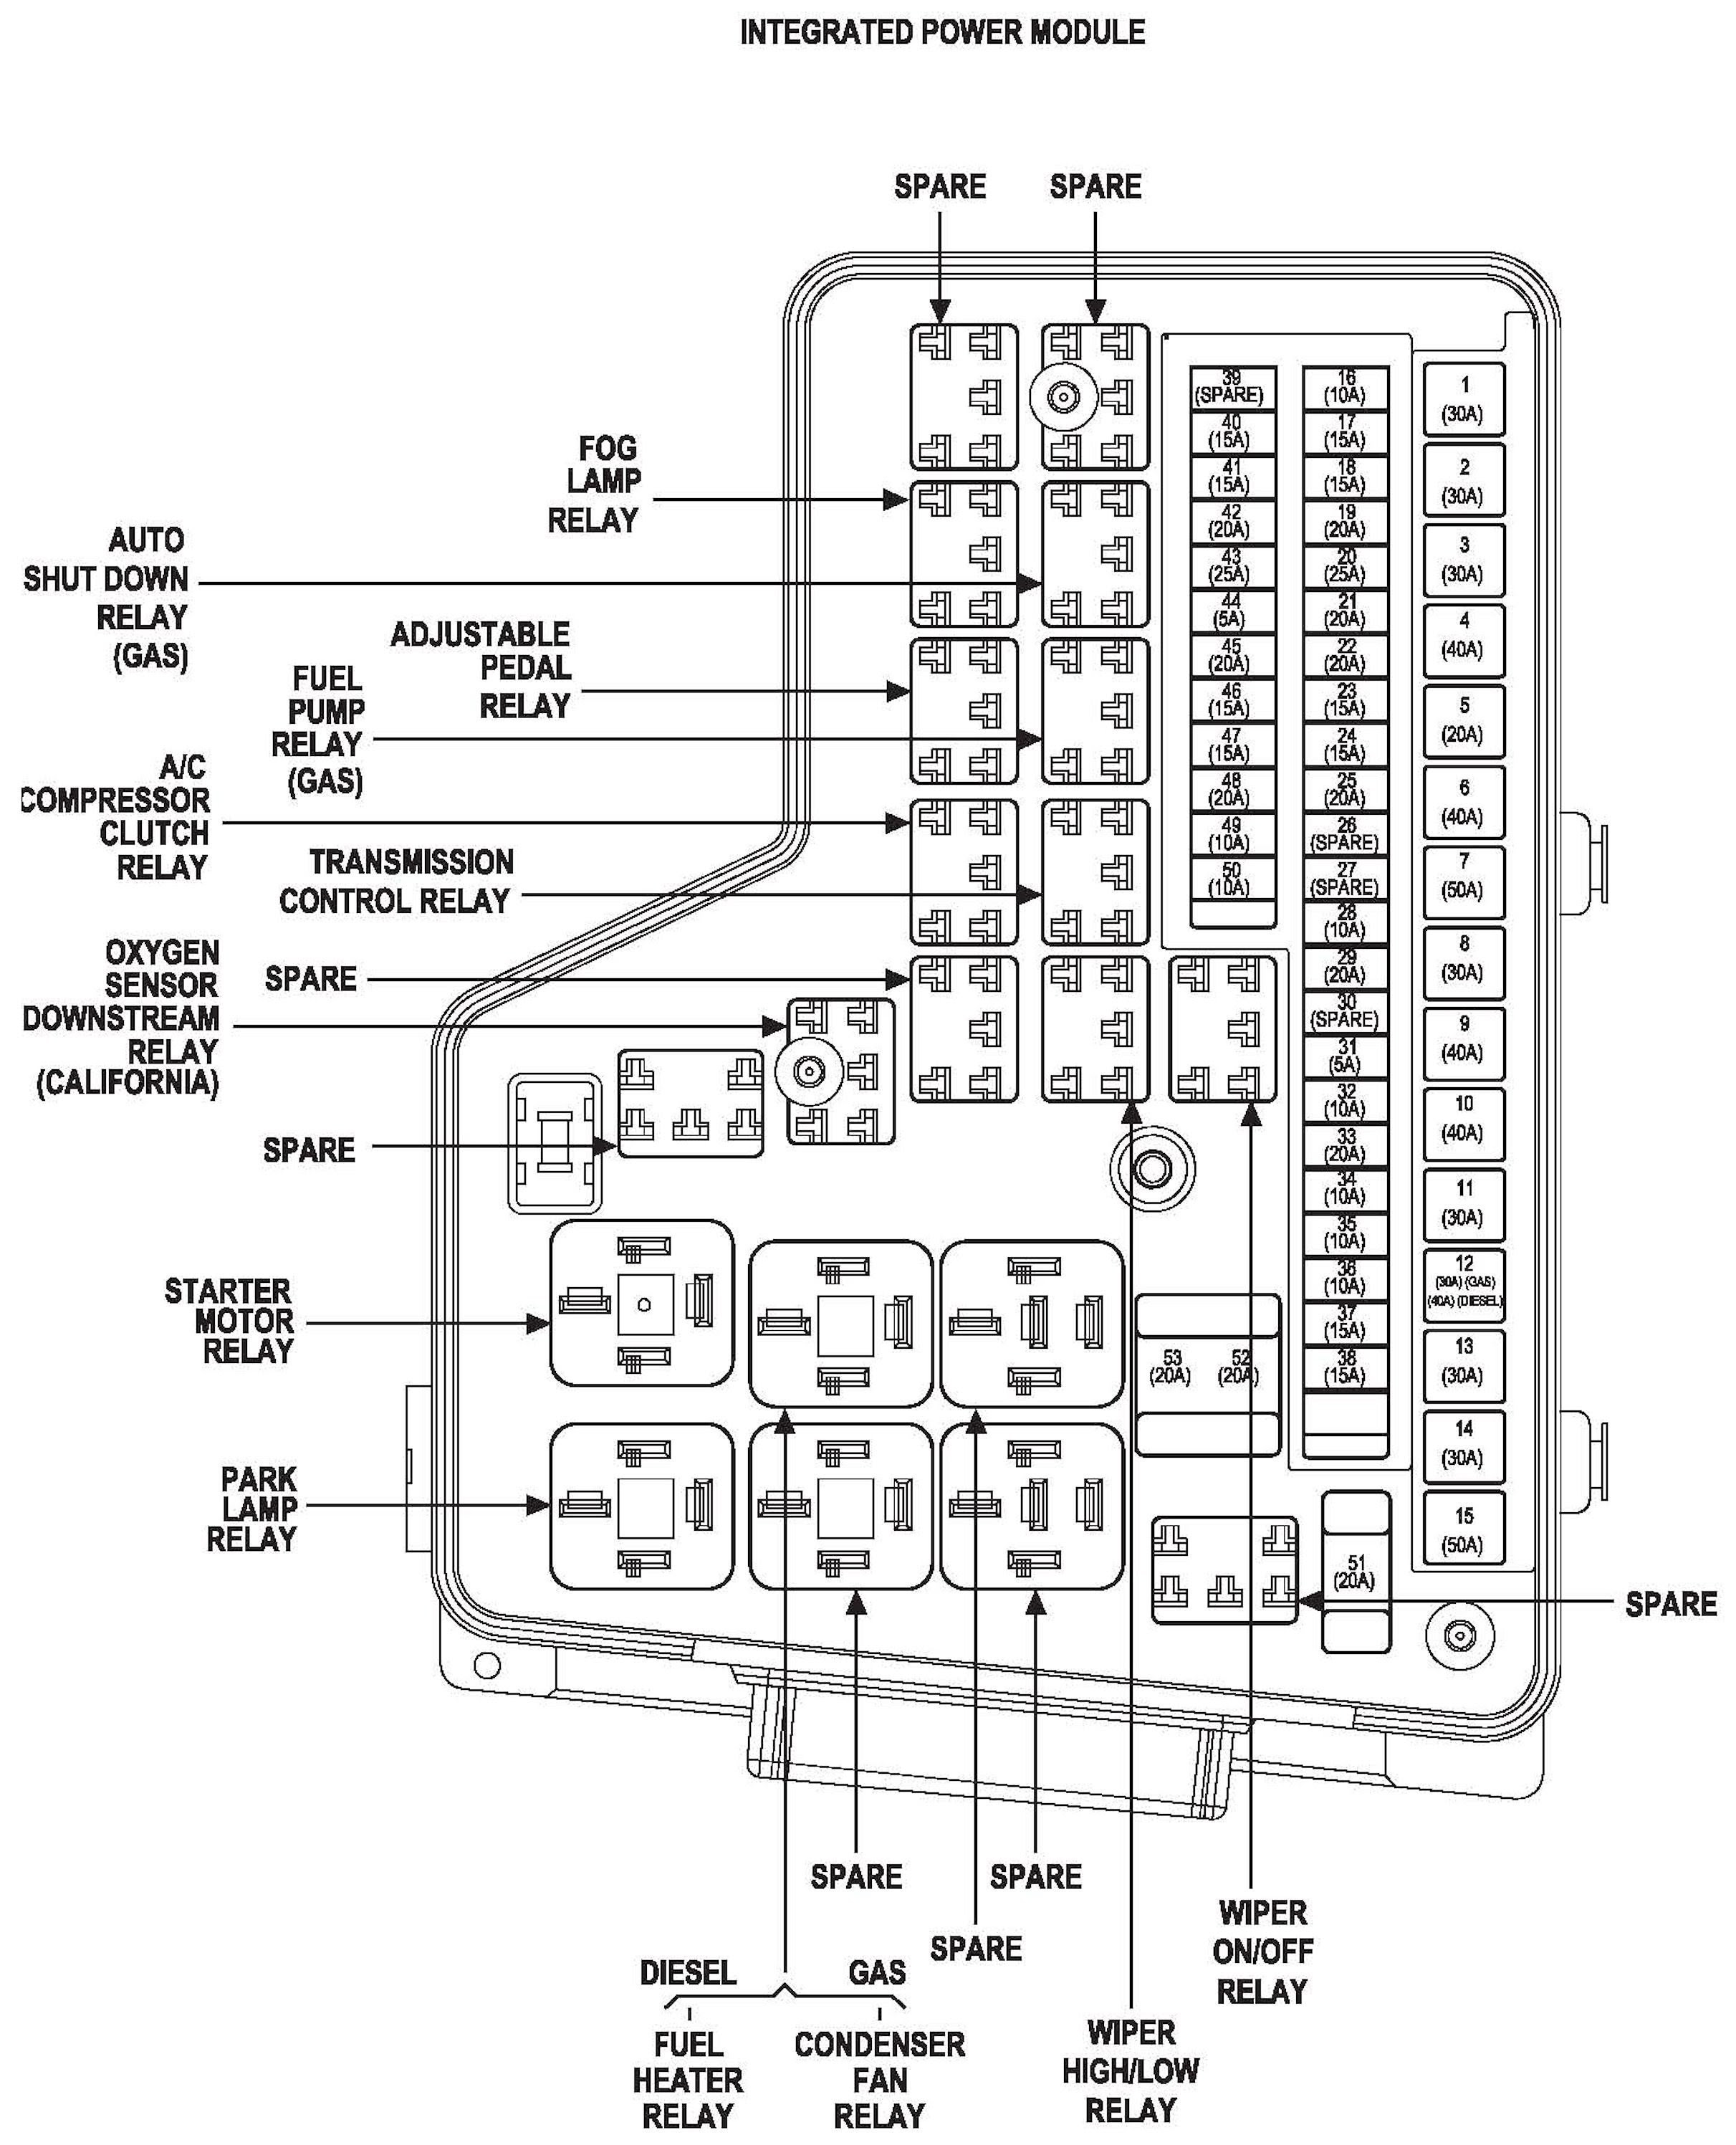 7e52 1996 Dodge Caravan Fuse Box Diagram Wiring Library